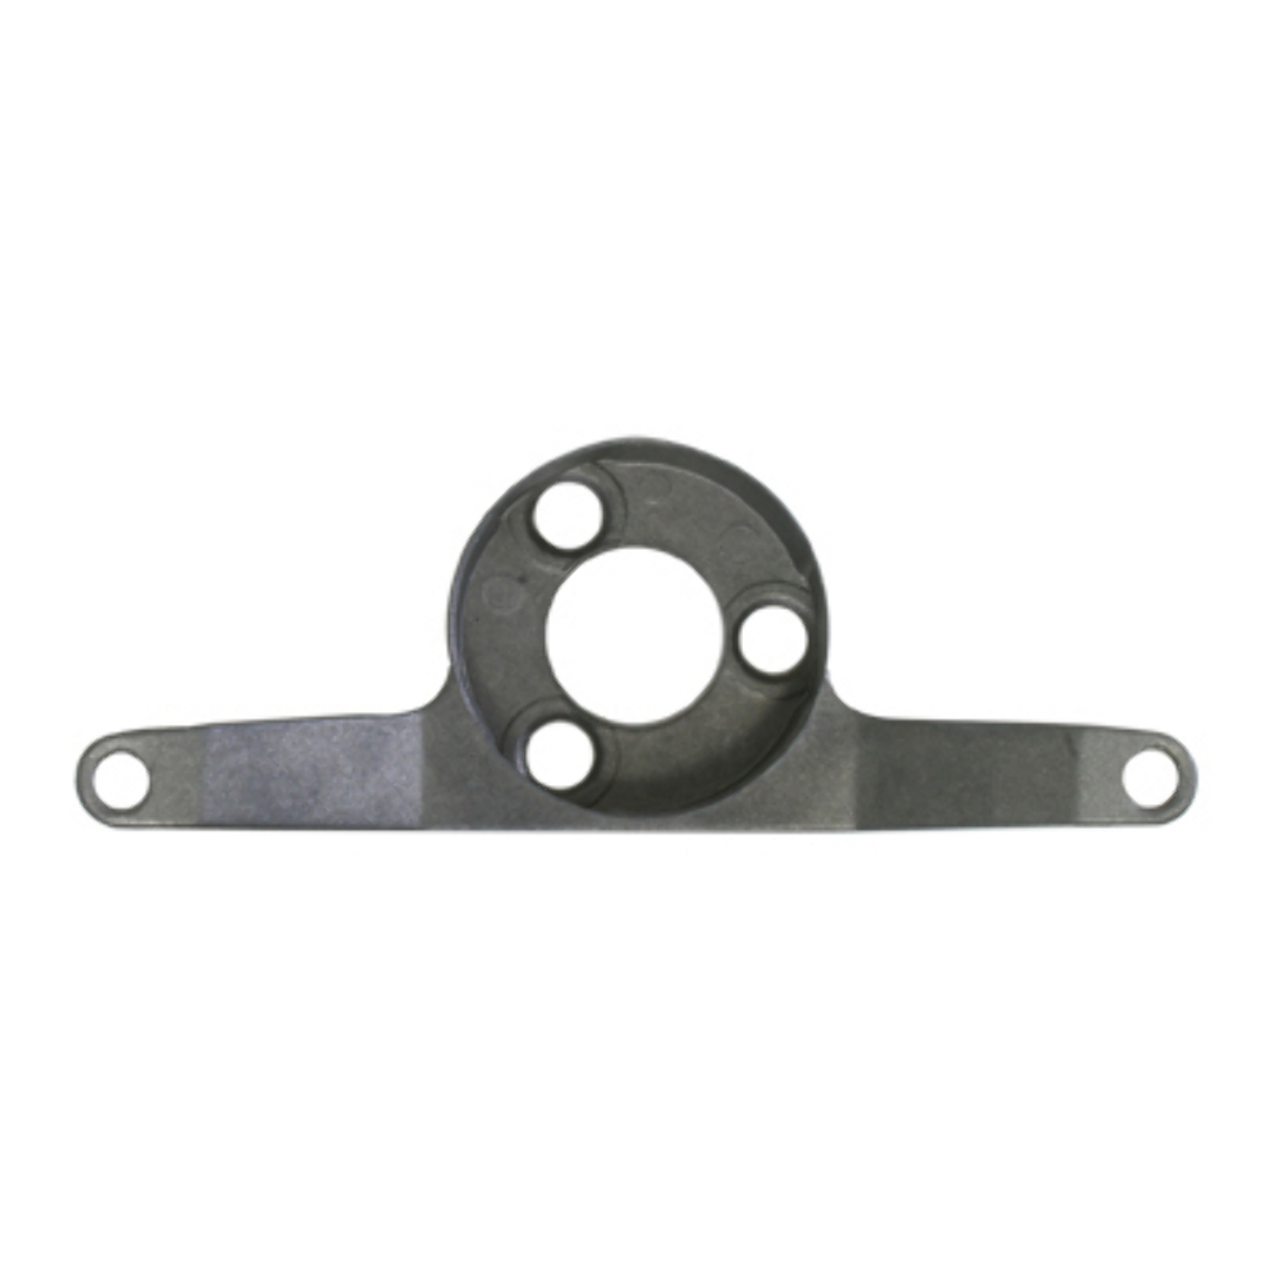 1962 1963 Chevy Impala Horn Ring Support Bracket - 62 63 Chevrolet